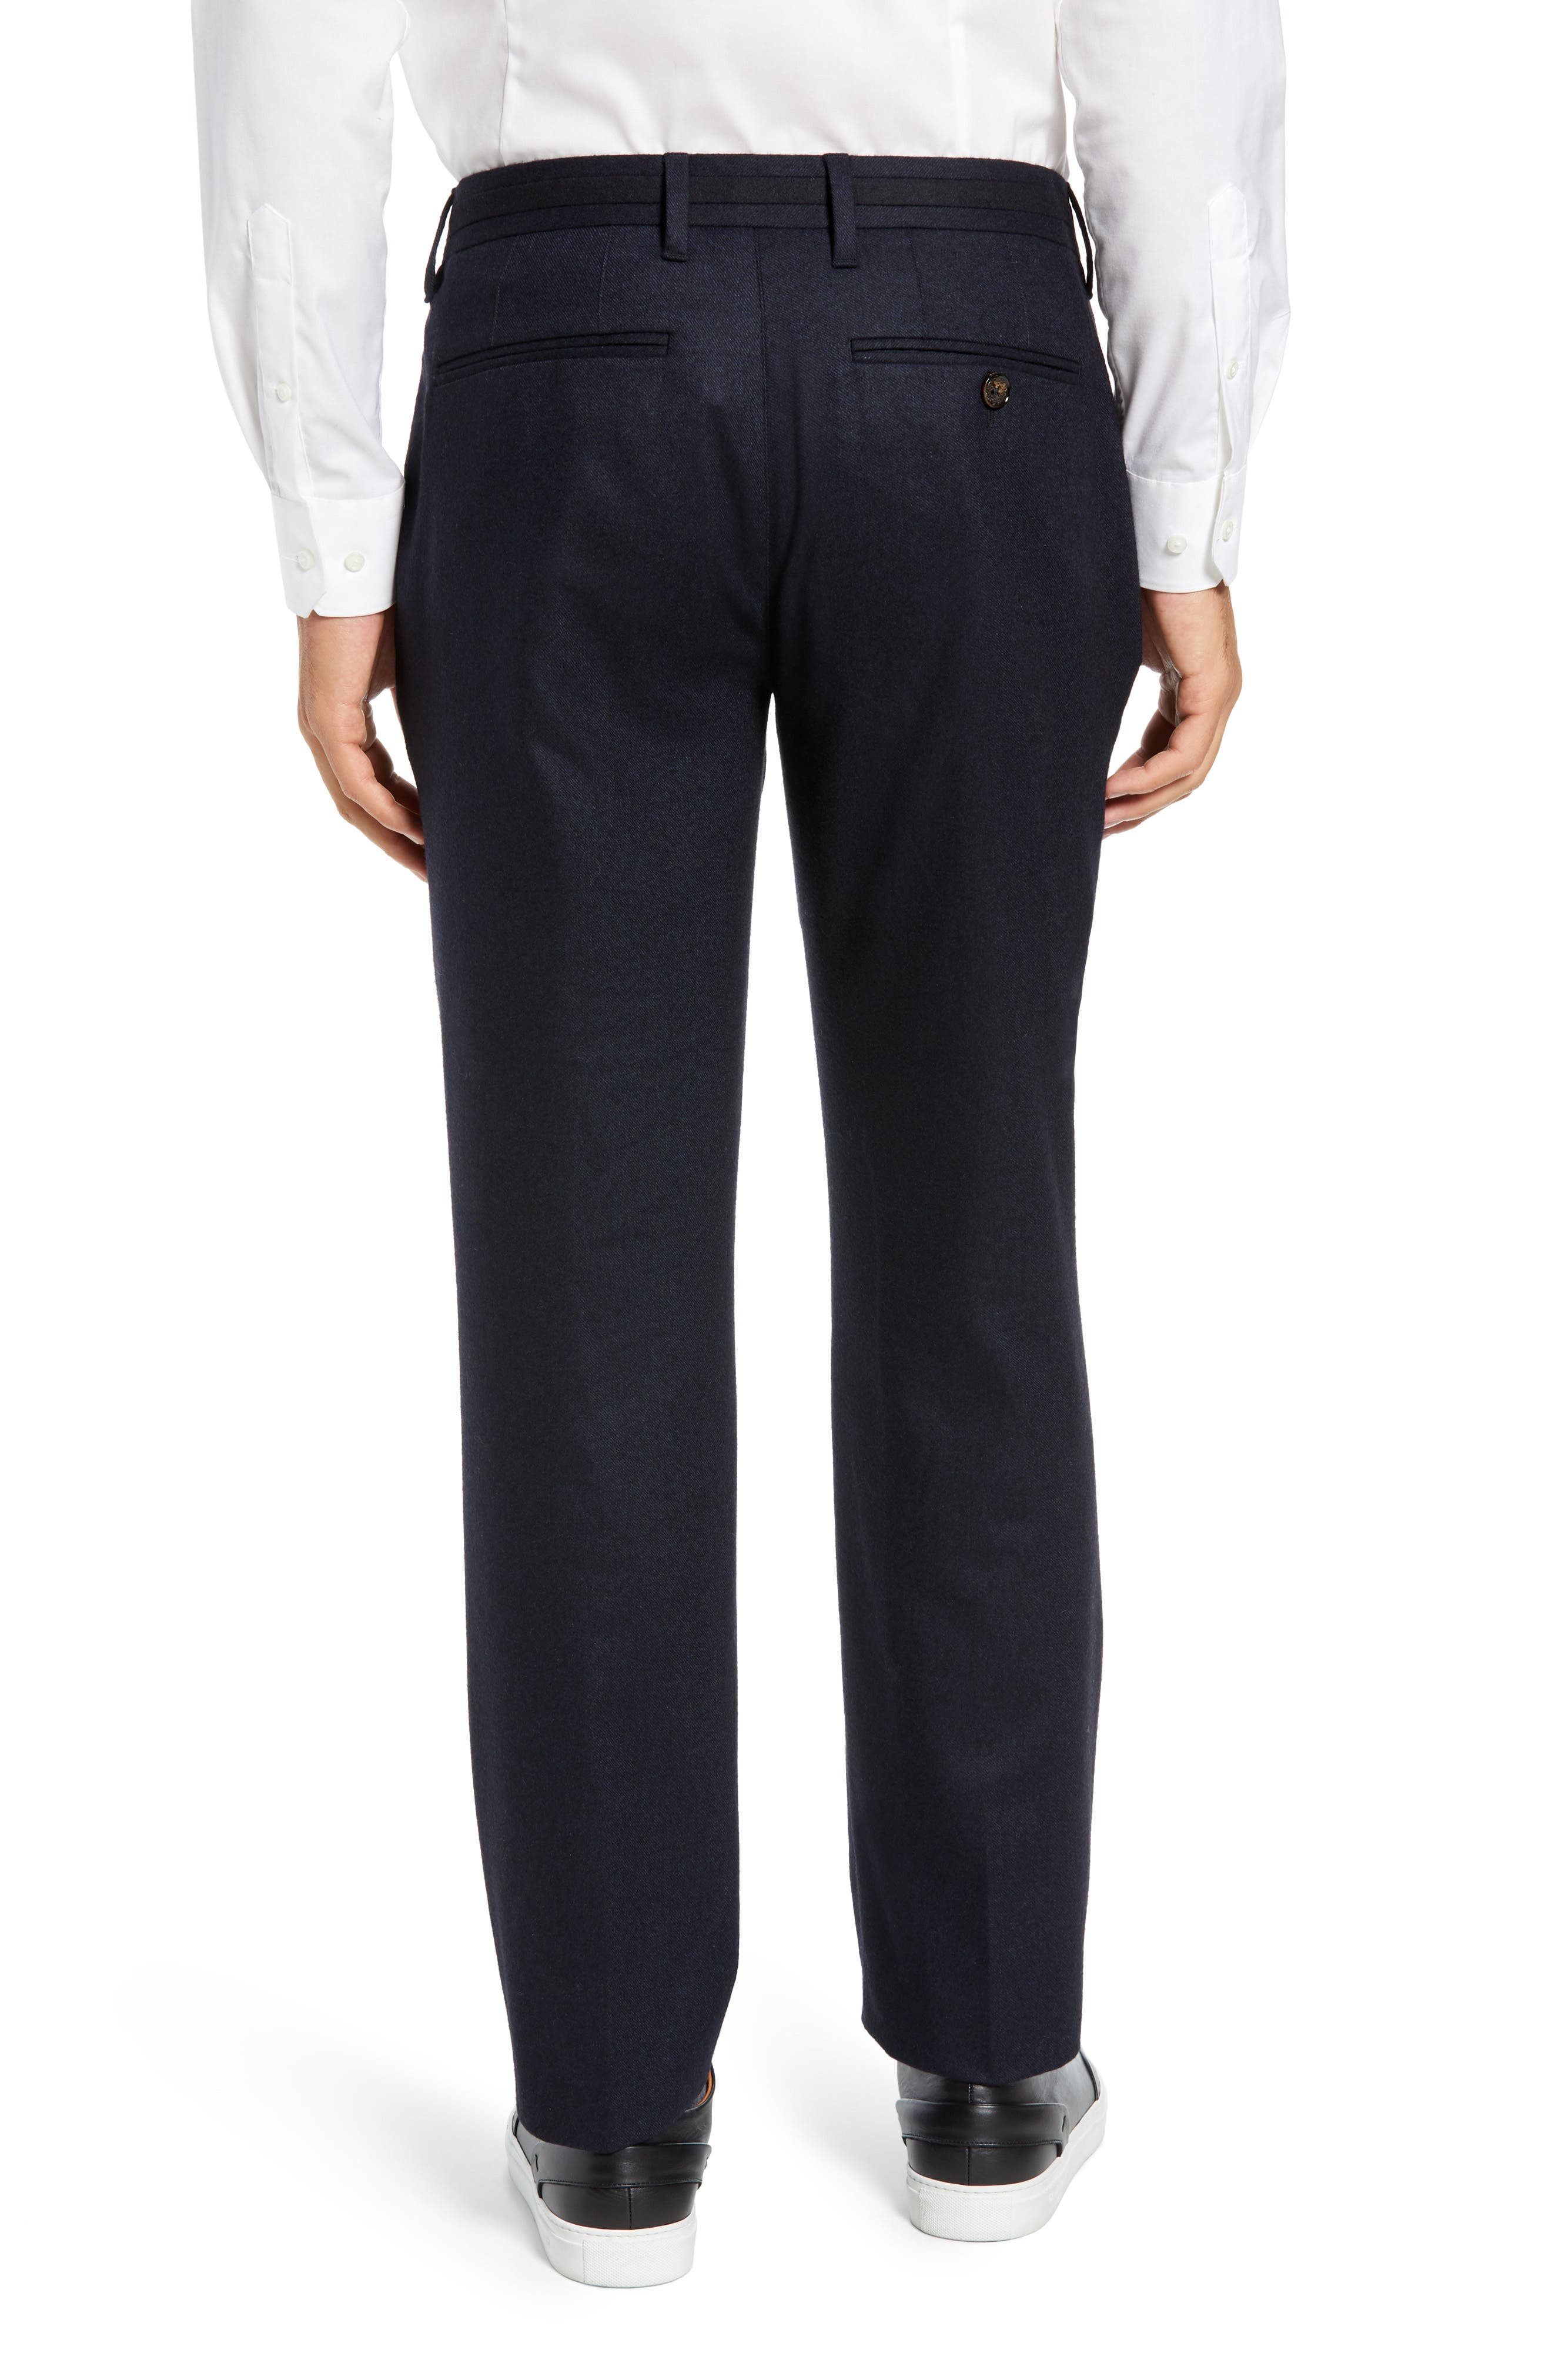 Matztro Trim Fit Wool Blend Trousers,                             Alternate thumbnail 2, color,                             NAVY